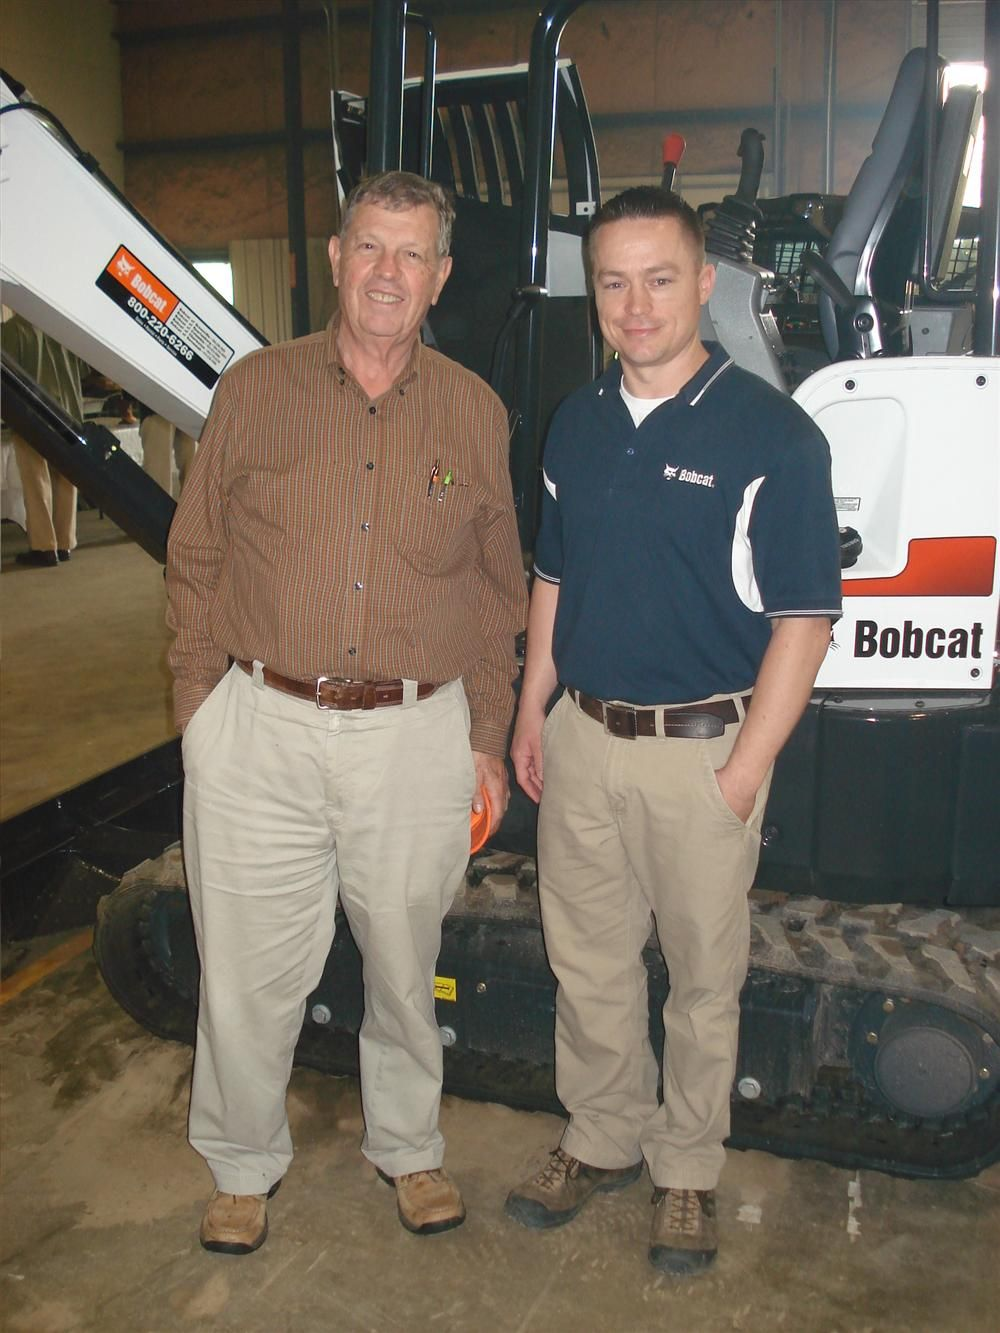 Frank Nutt (L) of The Nutt Corp in Moore, S.C., and Freddie Blanton of Bobcat in Spartanburg examine the Bobcat E32 excavator.